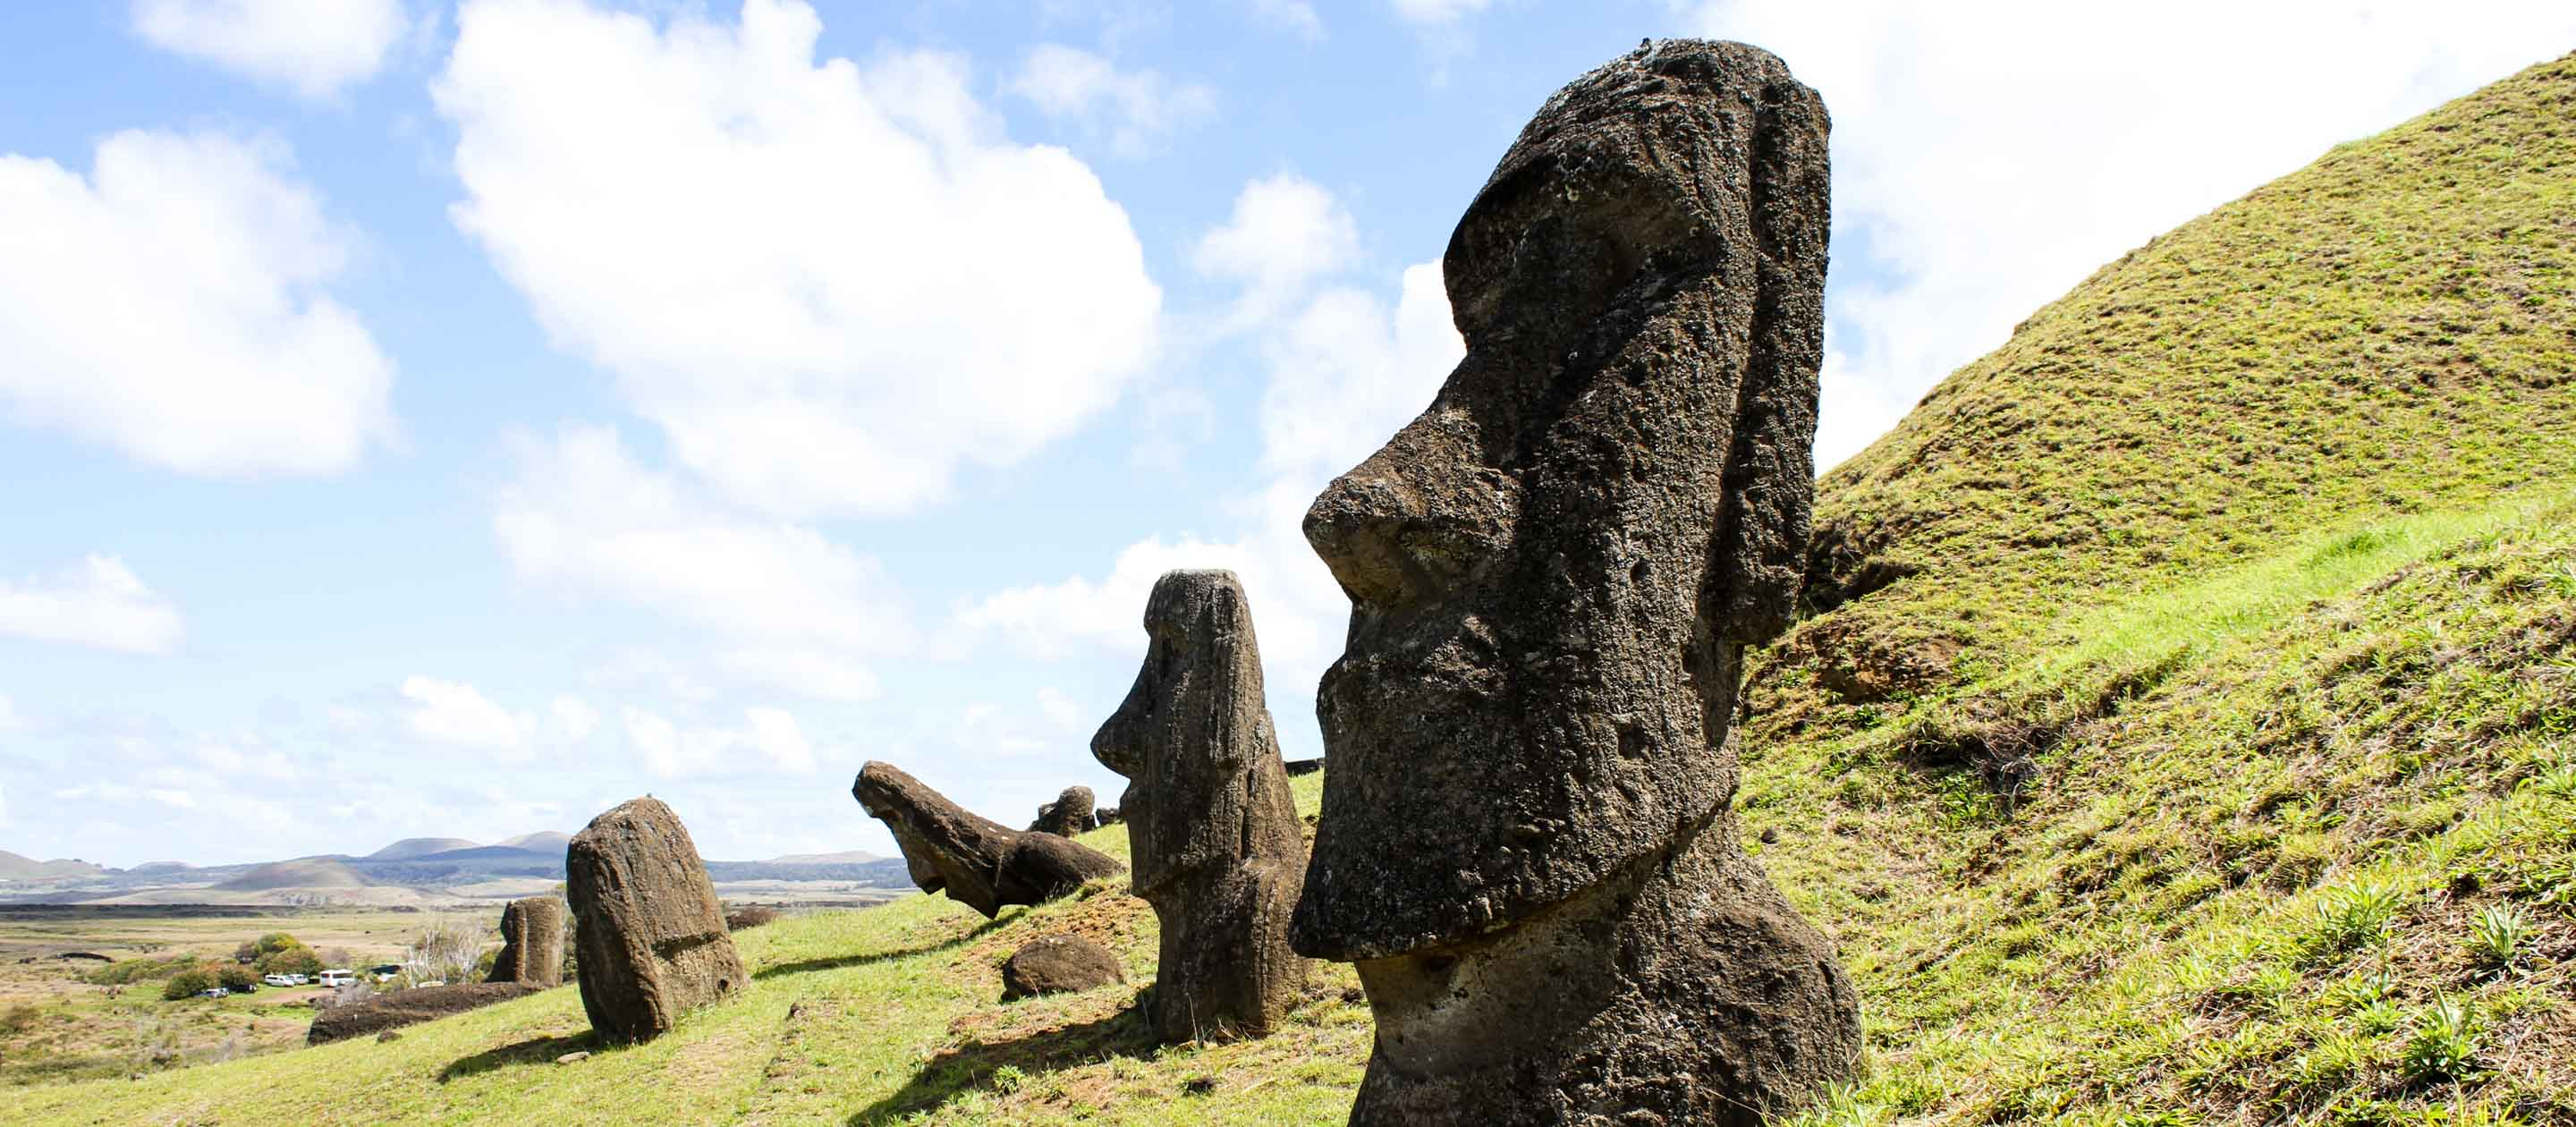 Statues on Easter Island, Chile